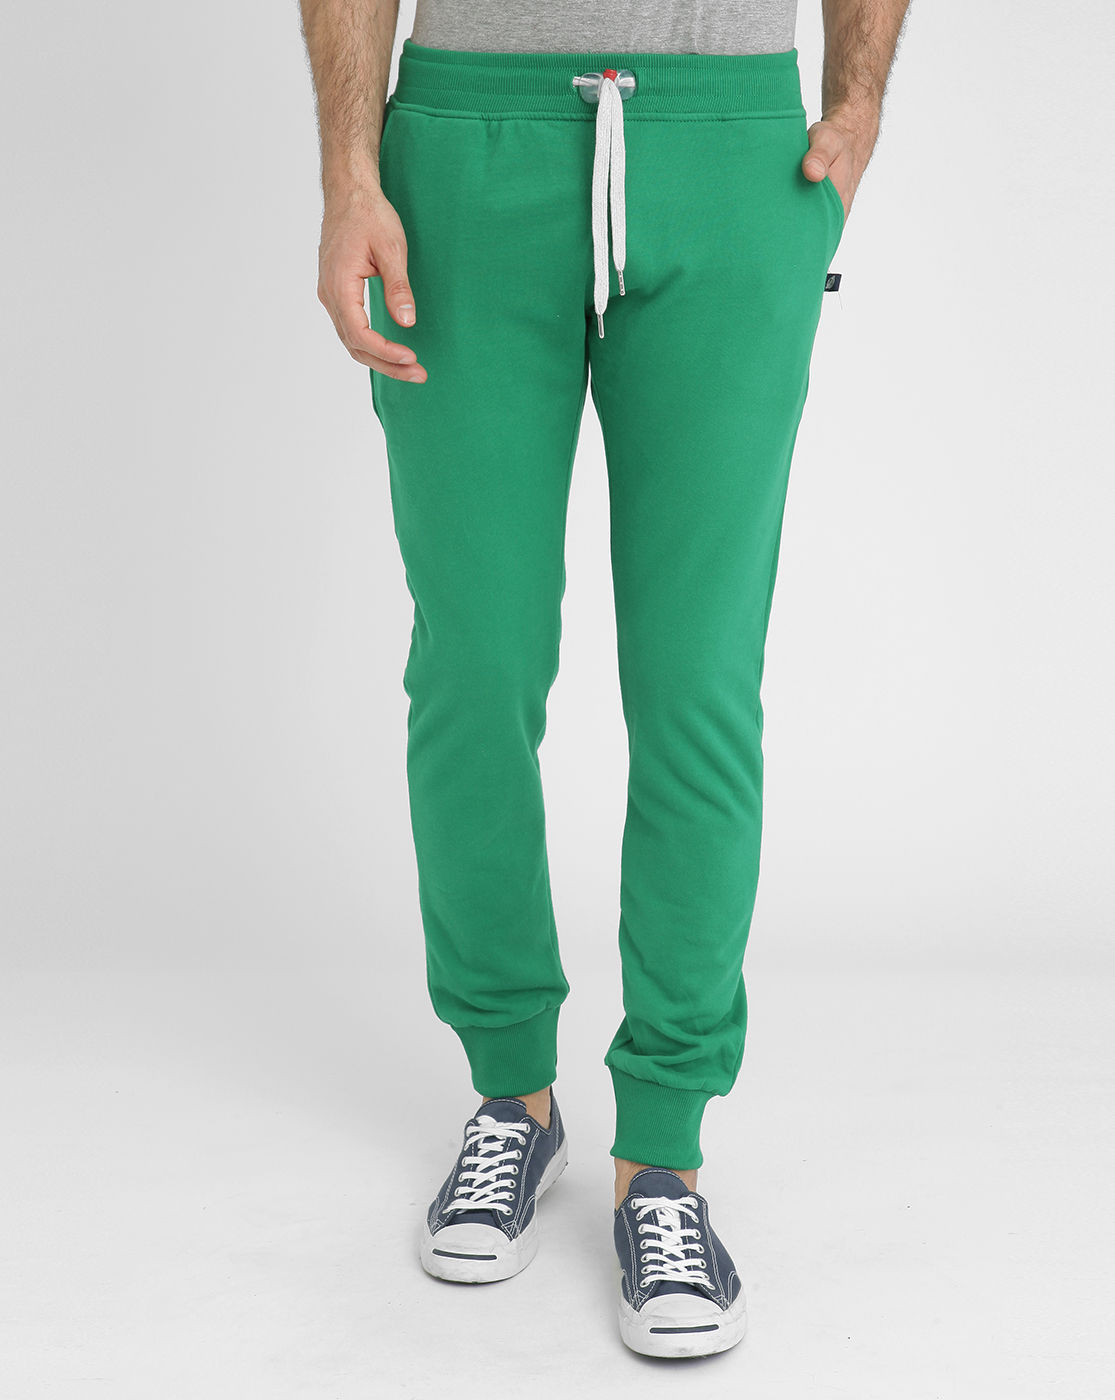 Mens Slim Tall Pants ($ - $): 30 of items - Shop Mens Slim Tall Pants from ALL your favorite stores & find HUGE SAVINGS up to 80% off Mens Slim Tall Pants, including GREAT DEALS like Van Heusen Flex 5 Pocket Pant Slim Pants-Big & Tall, Men's, Black, Size 52x30 ($).